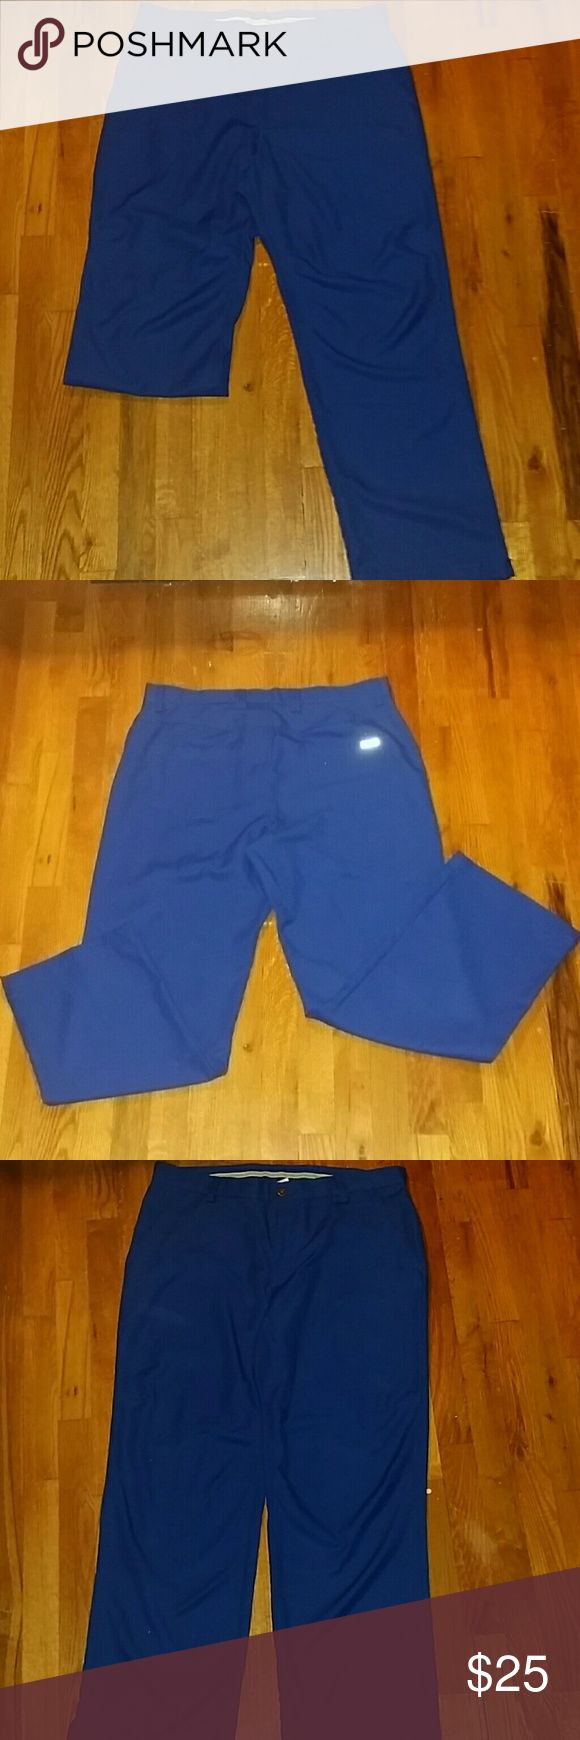 Men's Izod Golf Pants Lightweight, men's golf pants. Still in excellent condition! No stains or rips, only worn a few times. 100% polyester. Slim fit. Button /fly front. Izod Pants